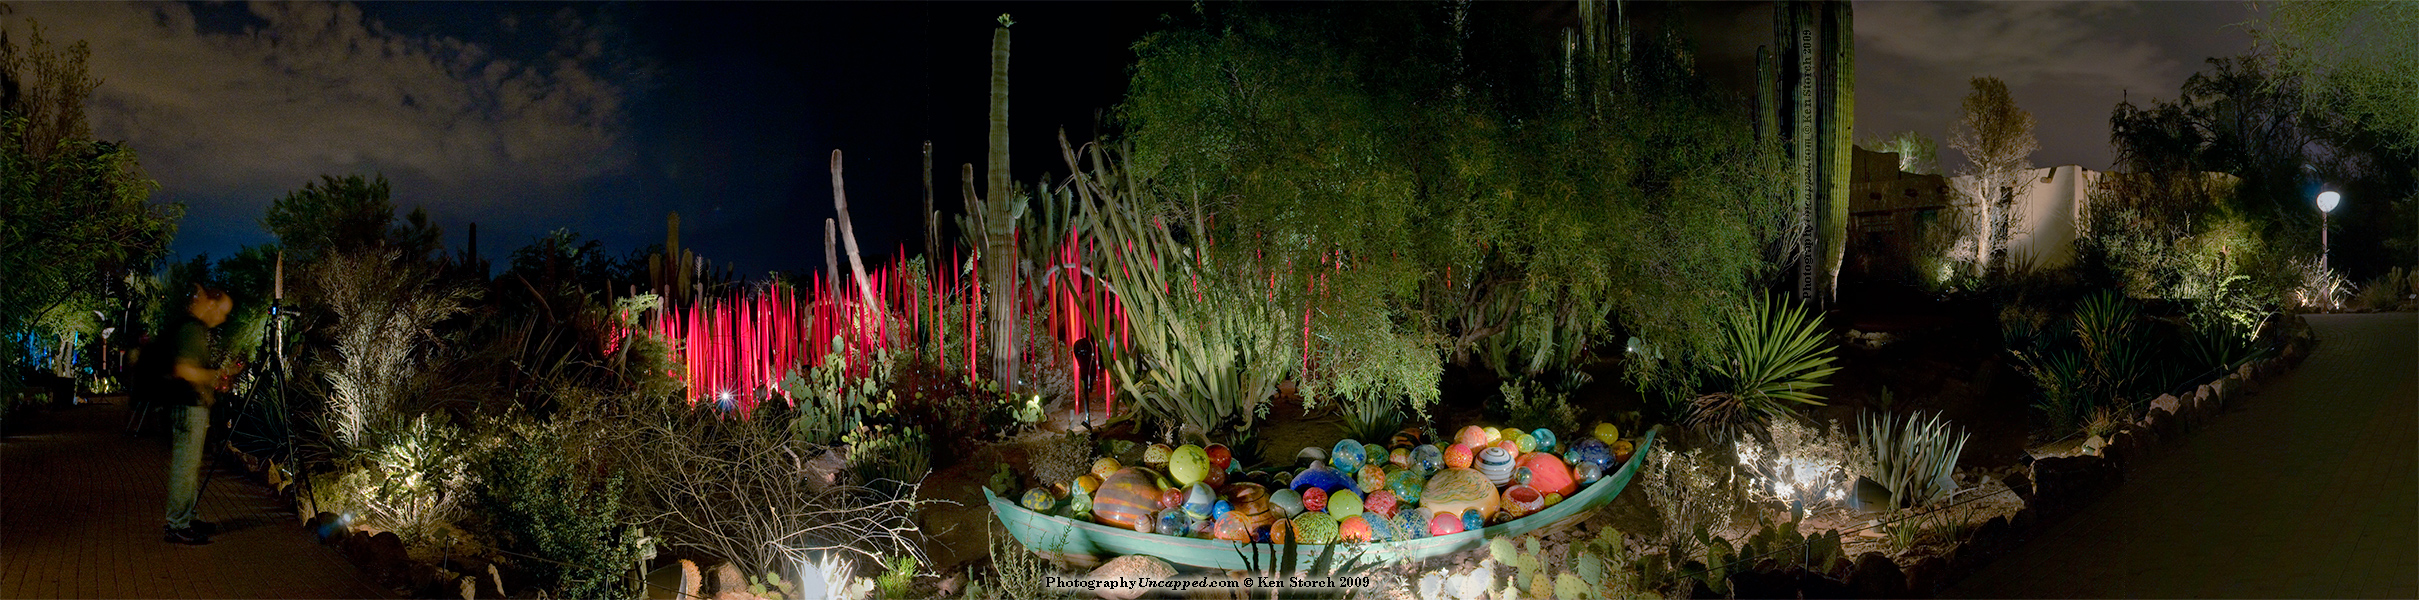 Desert Botanical Garden Chihuly installation panoramic photograph